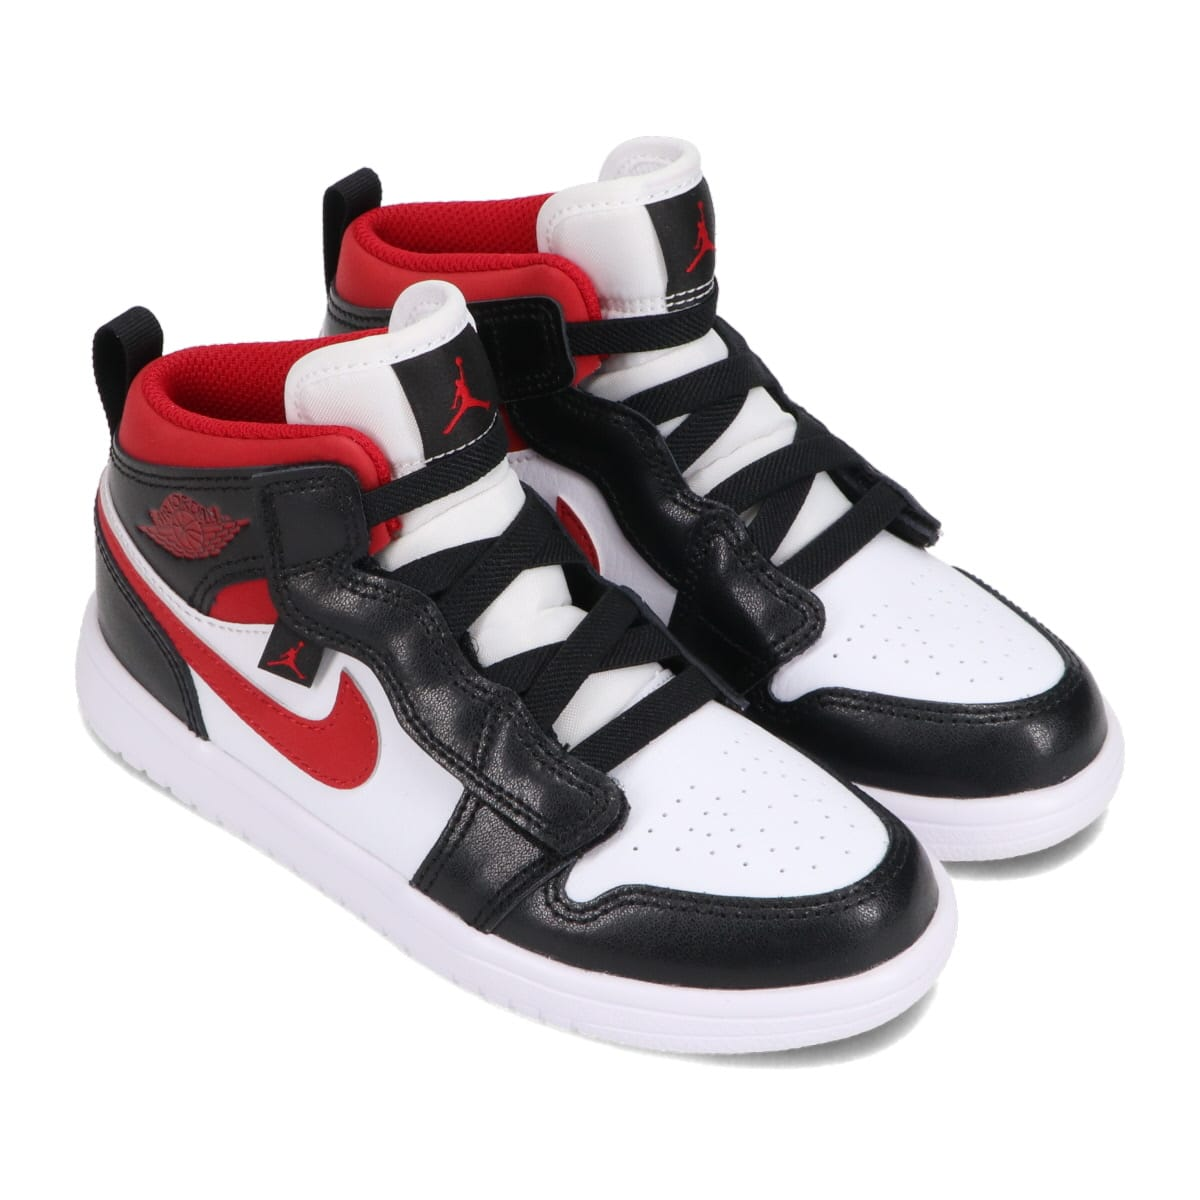 JORDAN BRAND JORDAN 1 MID ALT PS WHITE/GYM RED-BLACK 21SU-I_photo_large